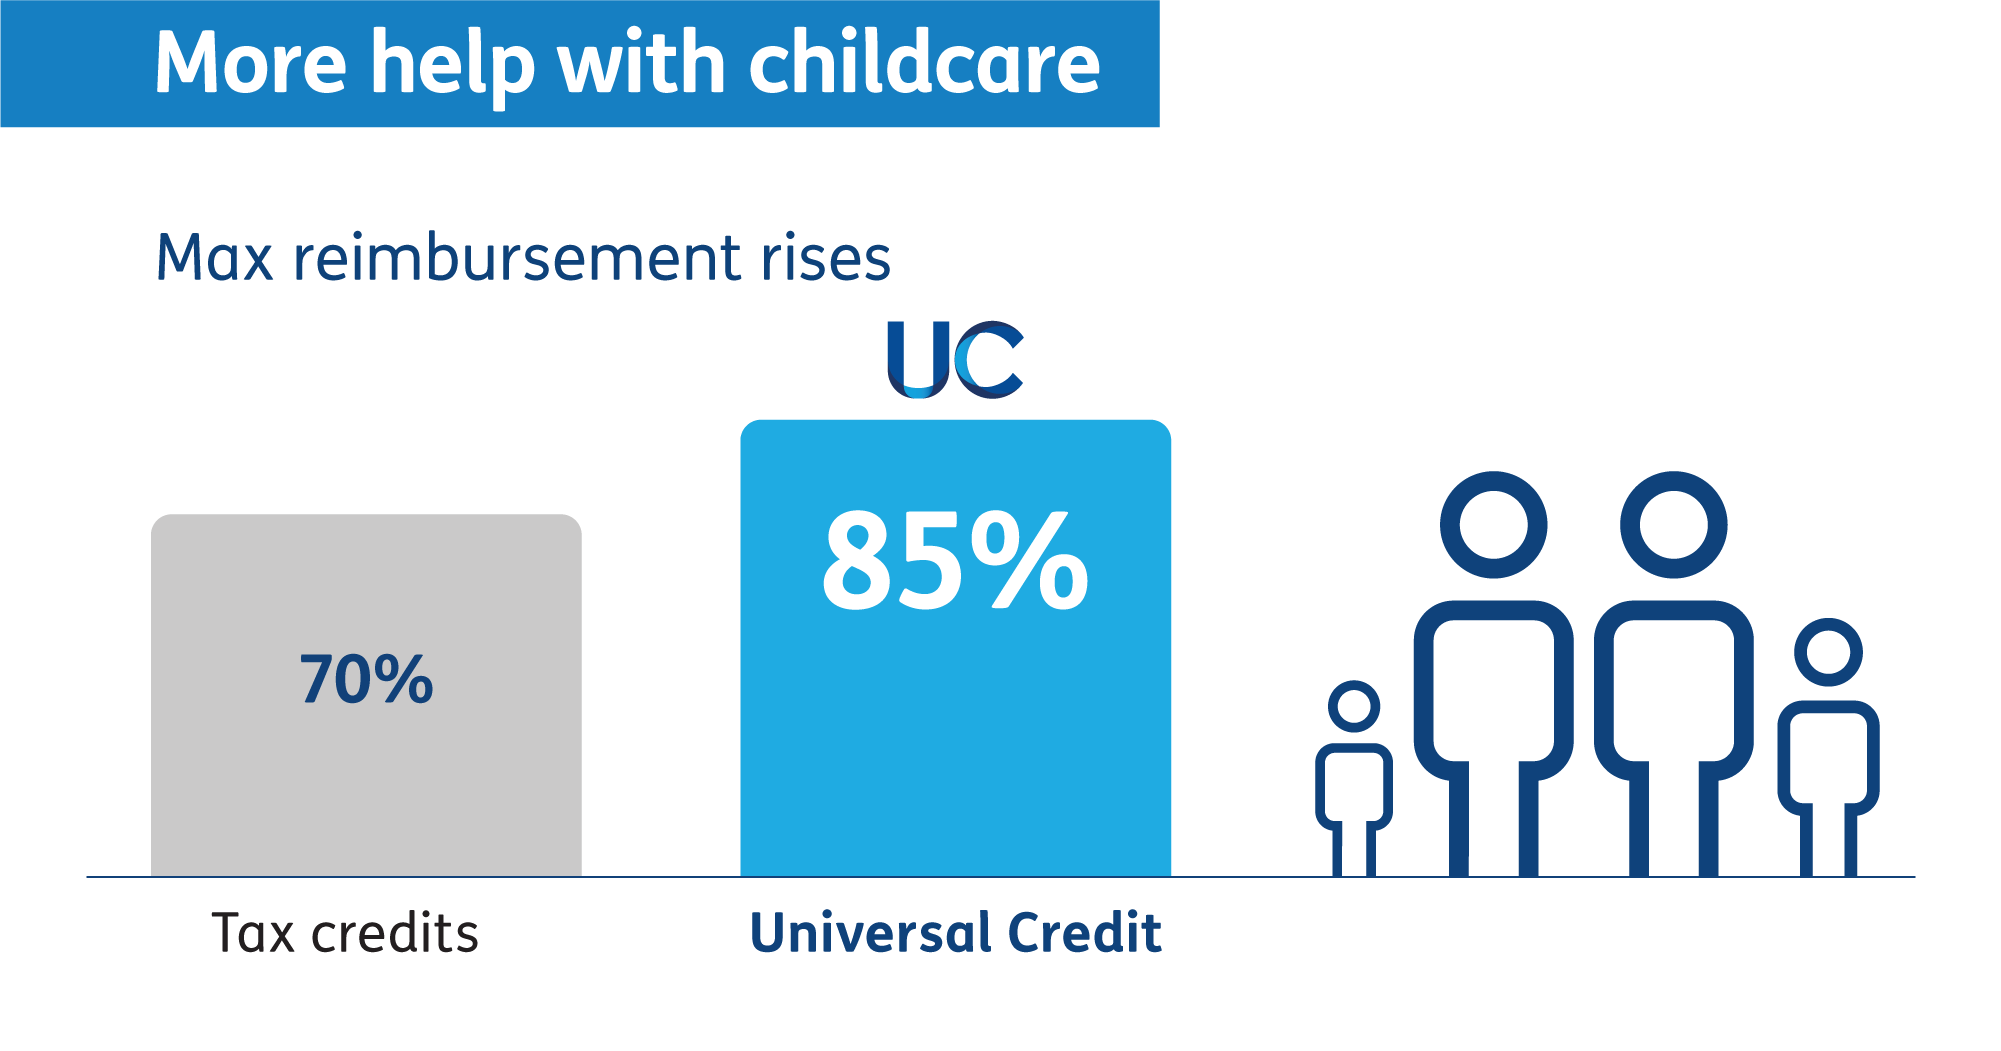 More help with childcare